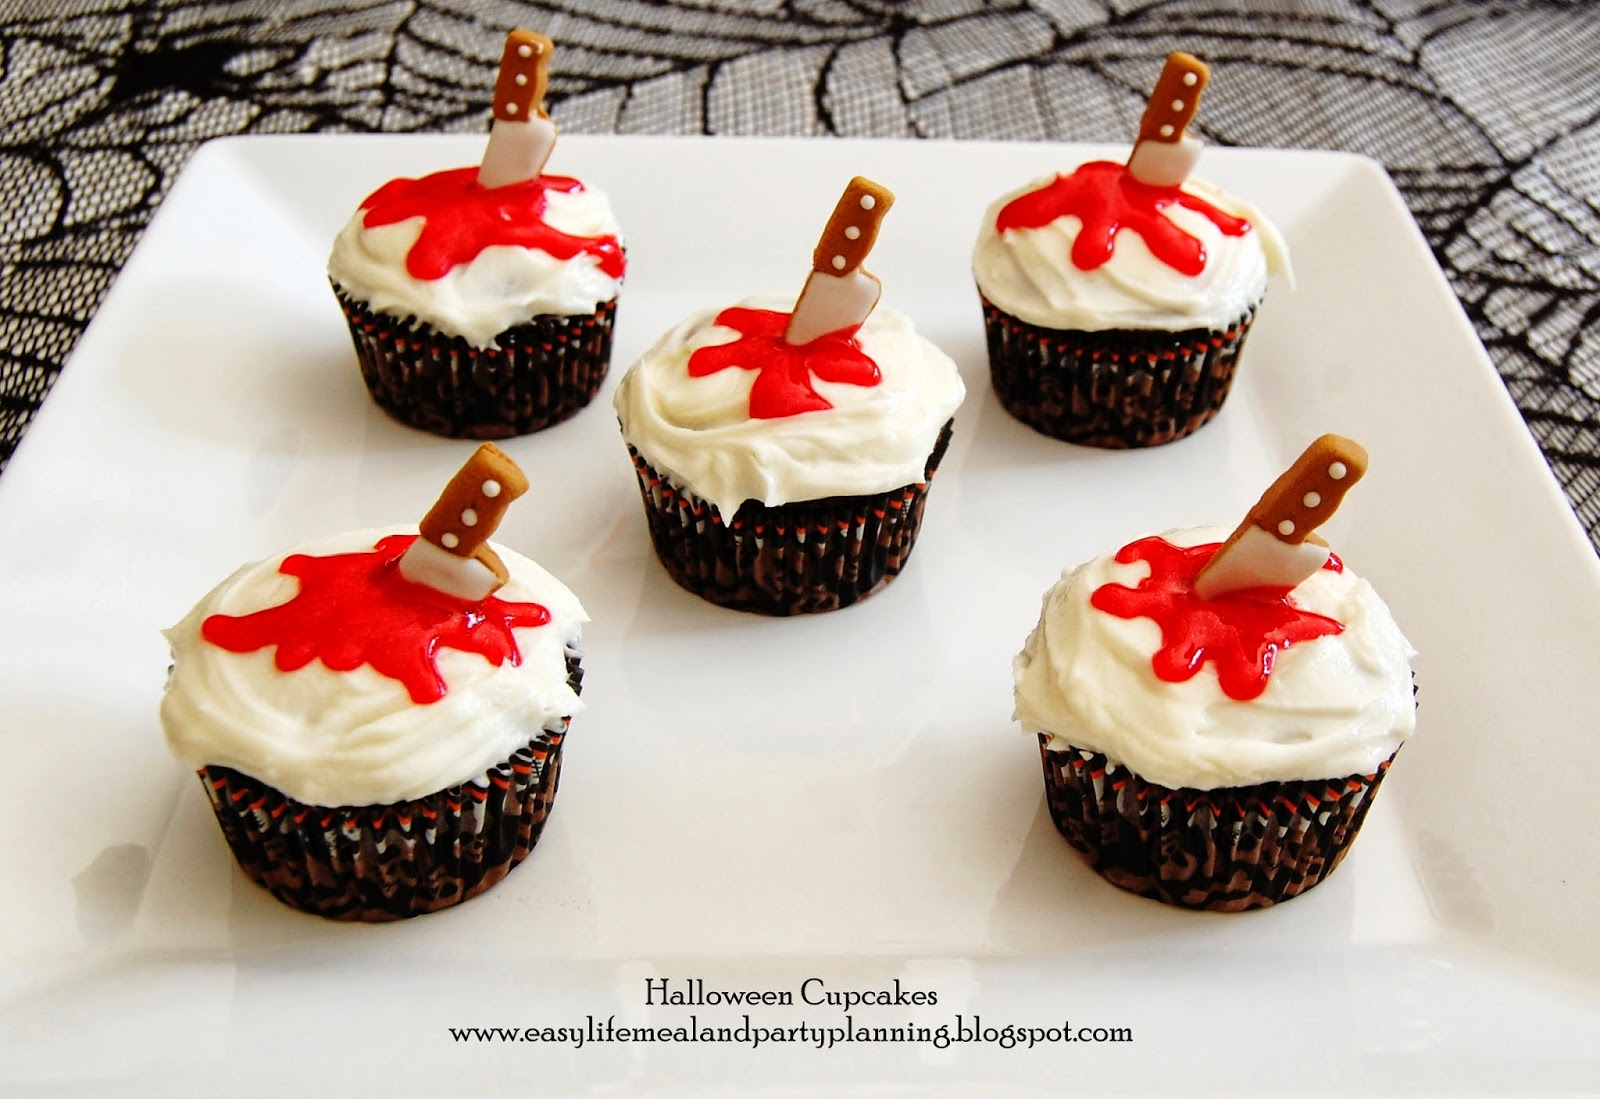 Easy life meal and party planning october 2013 Halloween cupcakes